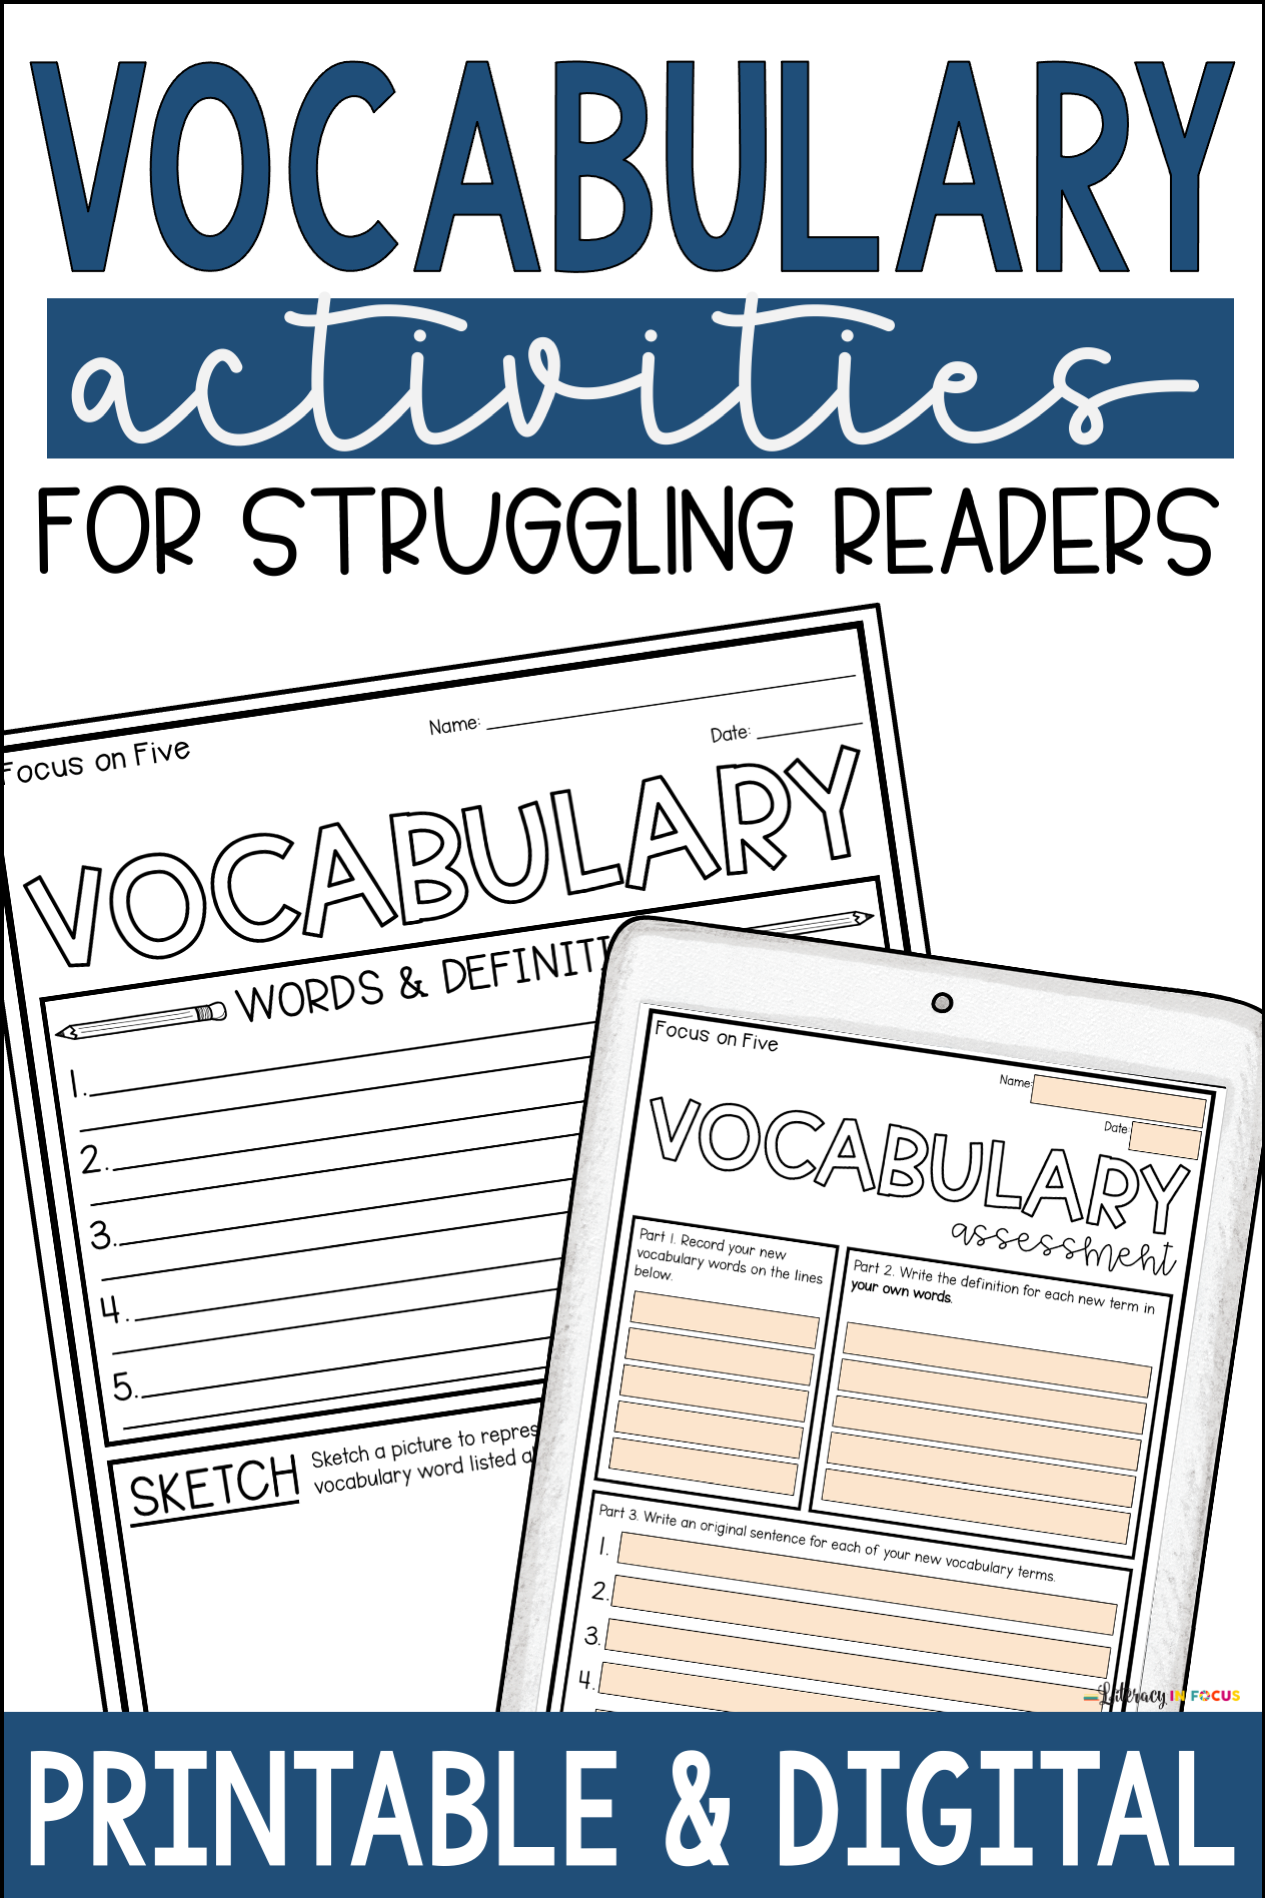 hight resolution of Vocabulary Worksheets for Elementary and Middle School Students    Vocabulary activities